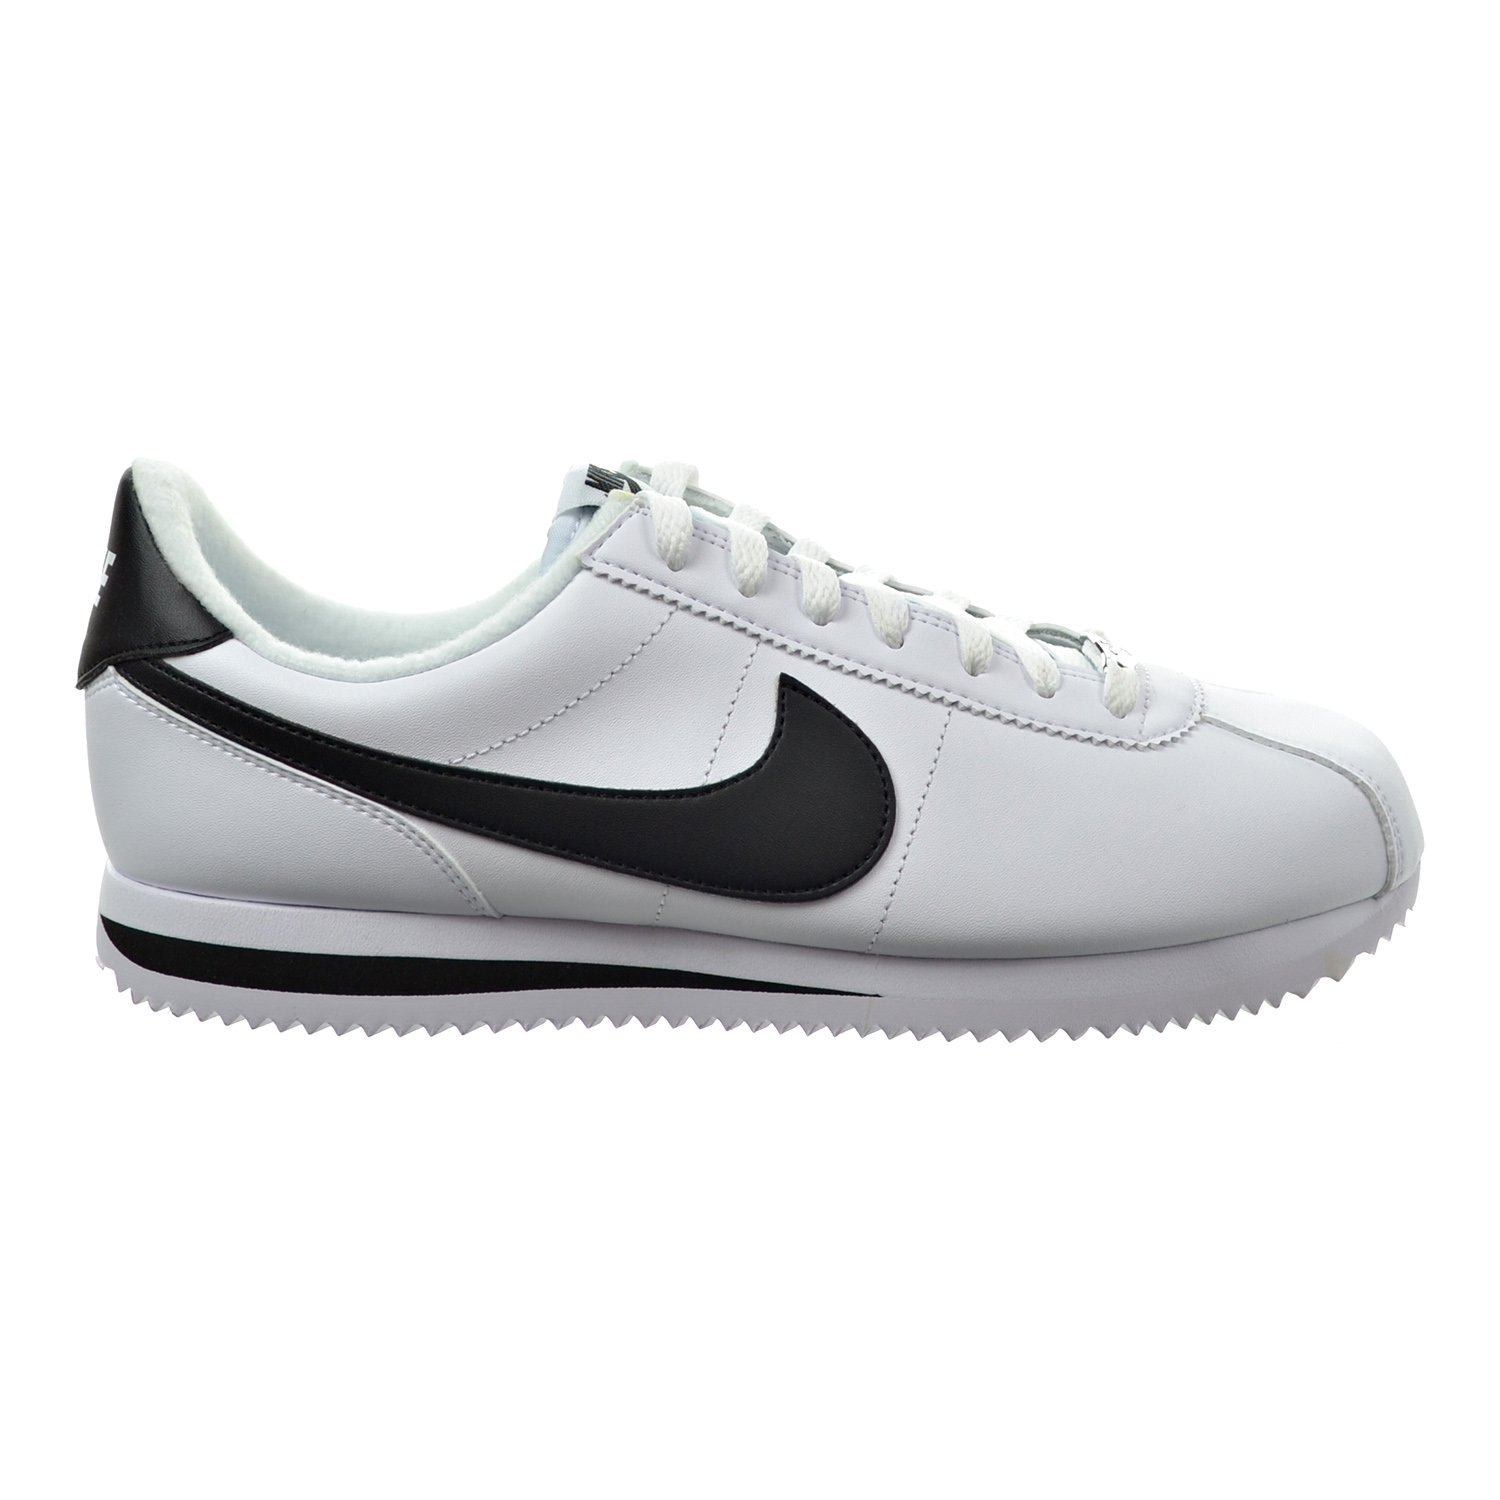 855a5f2146f090 nike cortez sneakers cheap